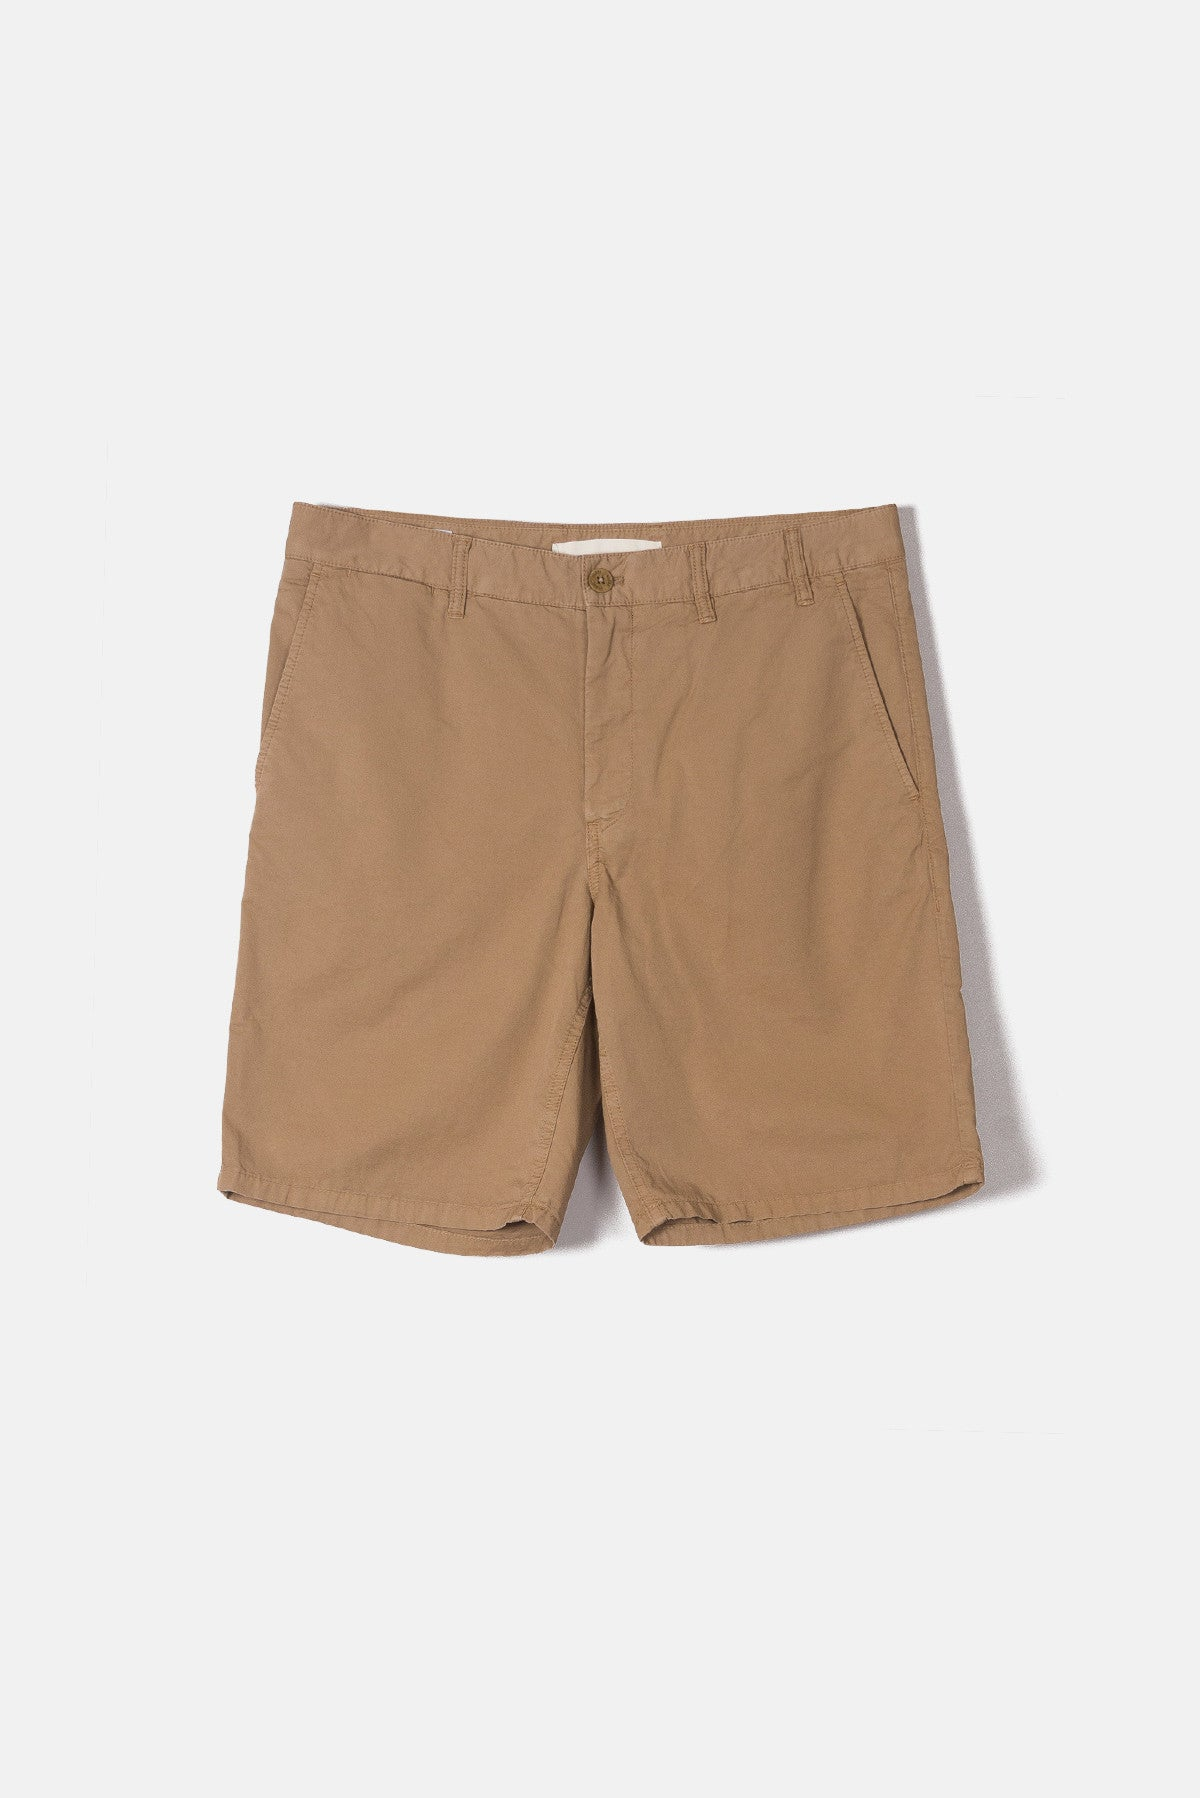 e9eb513c490 Norse Projects Aros Light Twill Shorts available from Priory